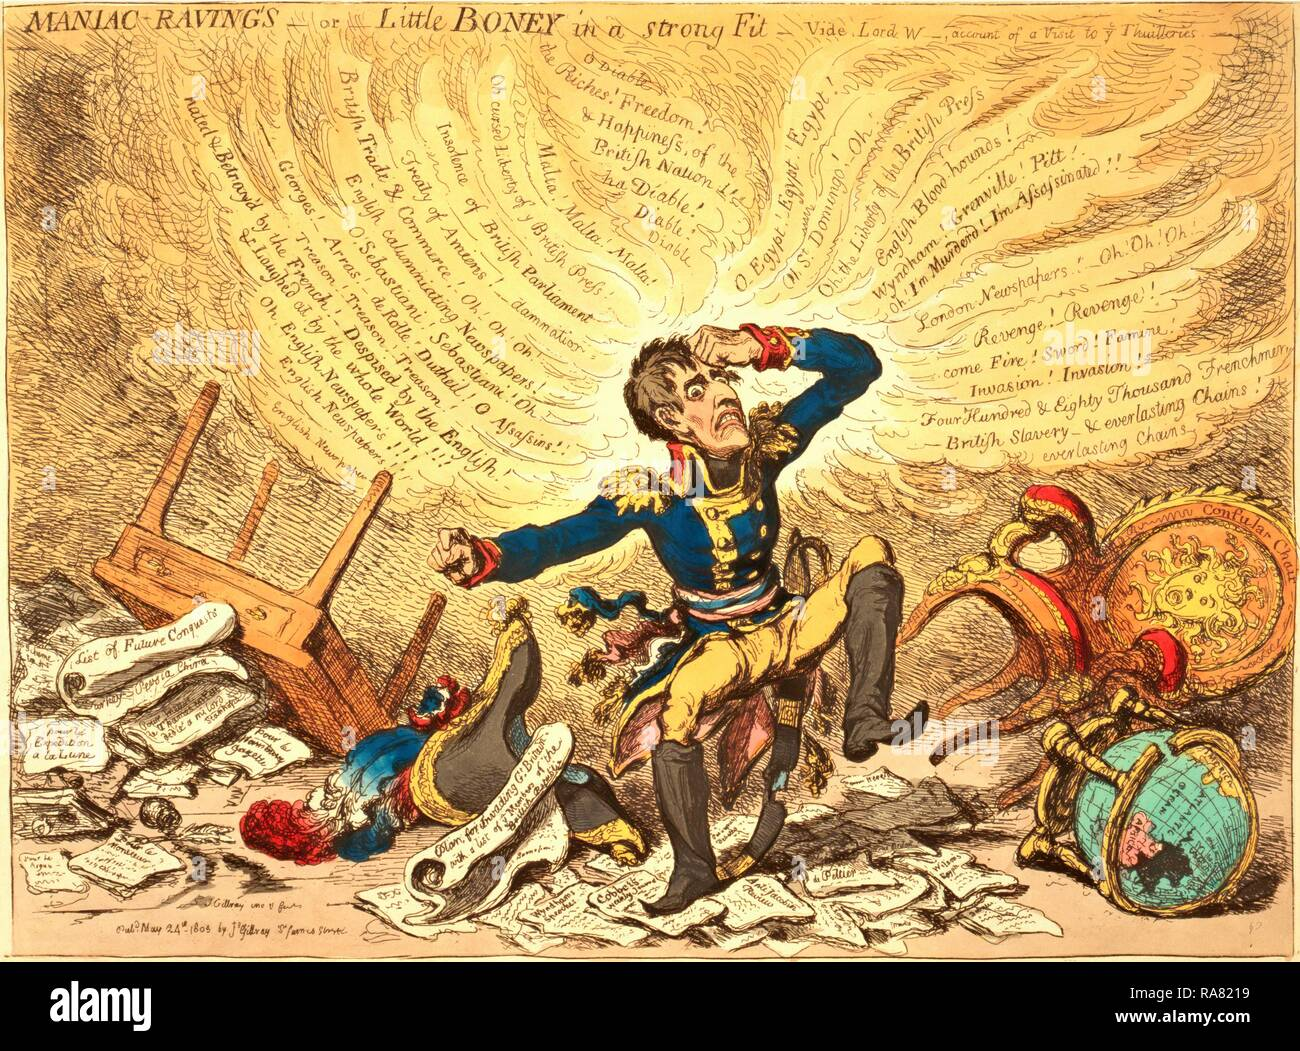 Maniac-raving's or Little Boney in a strong fit, Gillray, James, 1756-1815, engraver, London, 1803, Napoleon in a reimagined Stock Photo